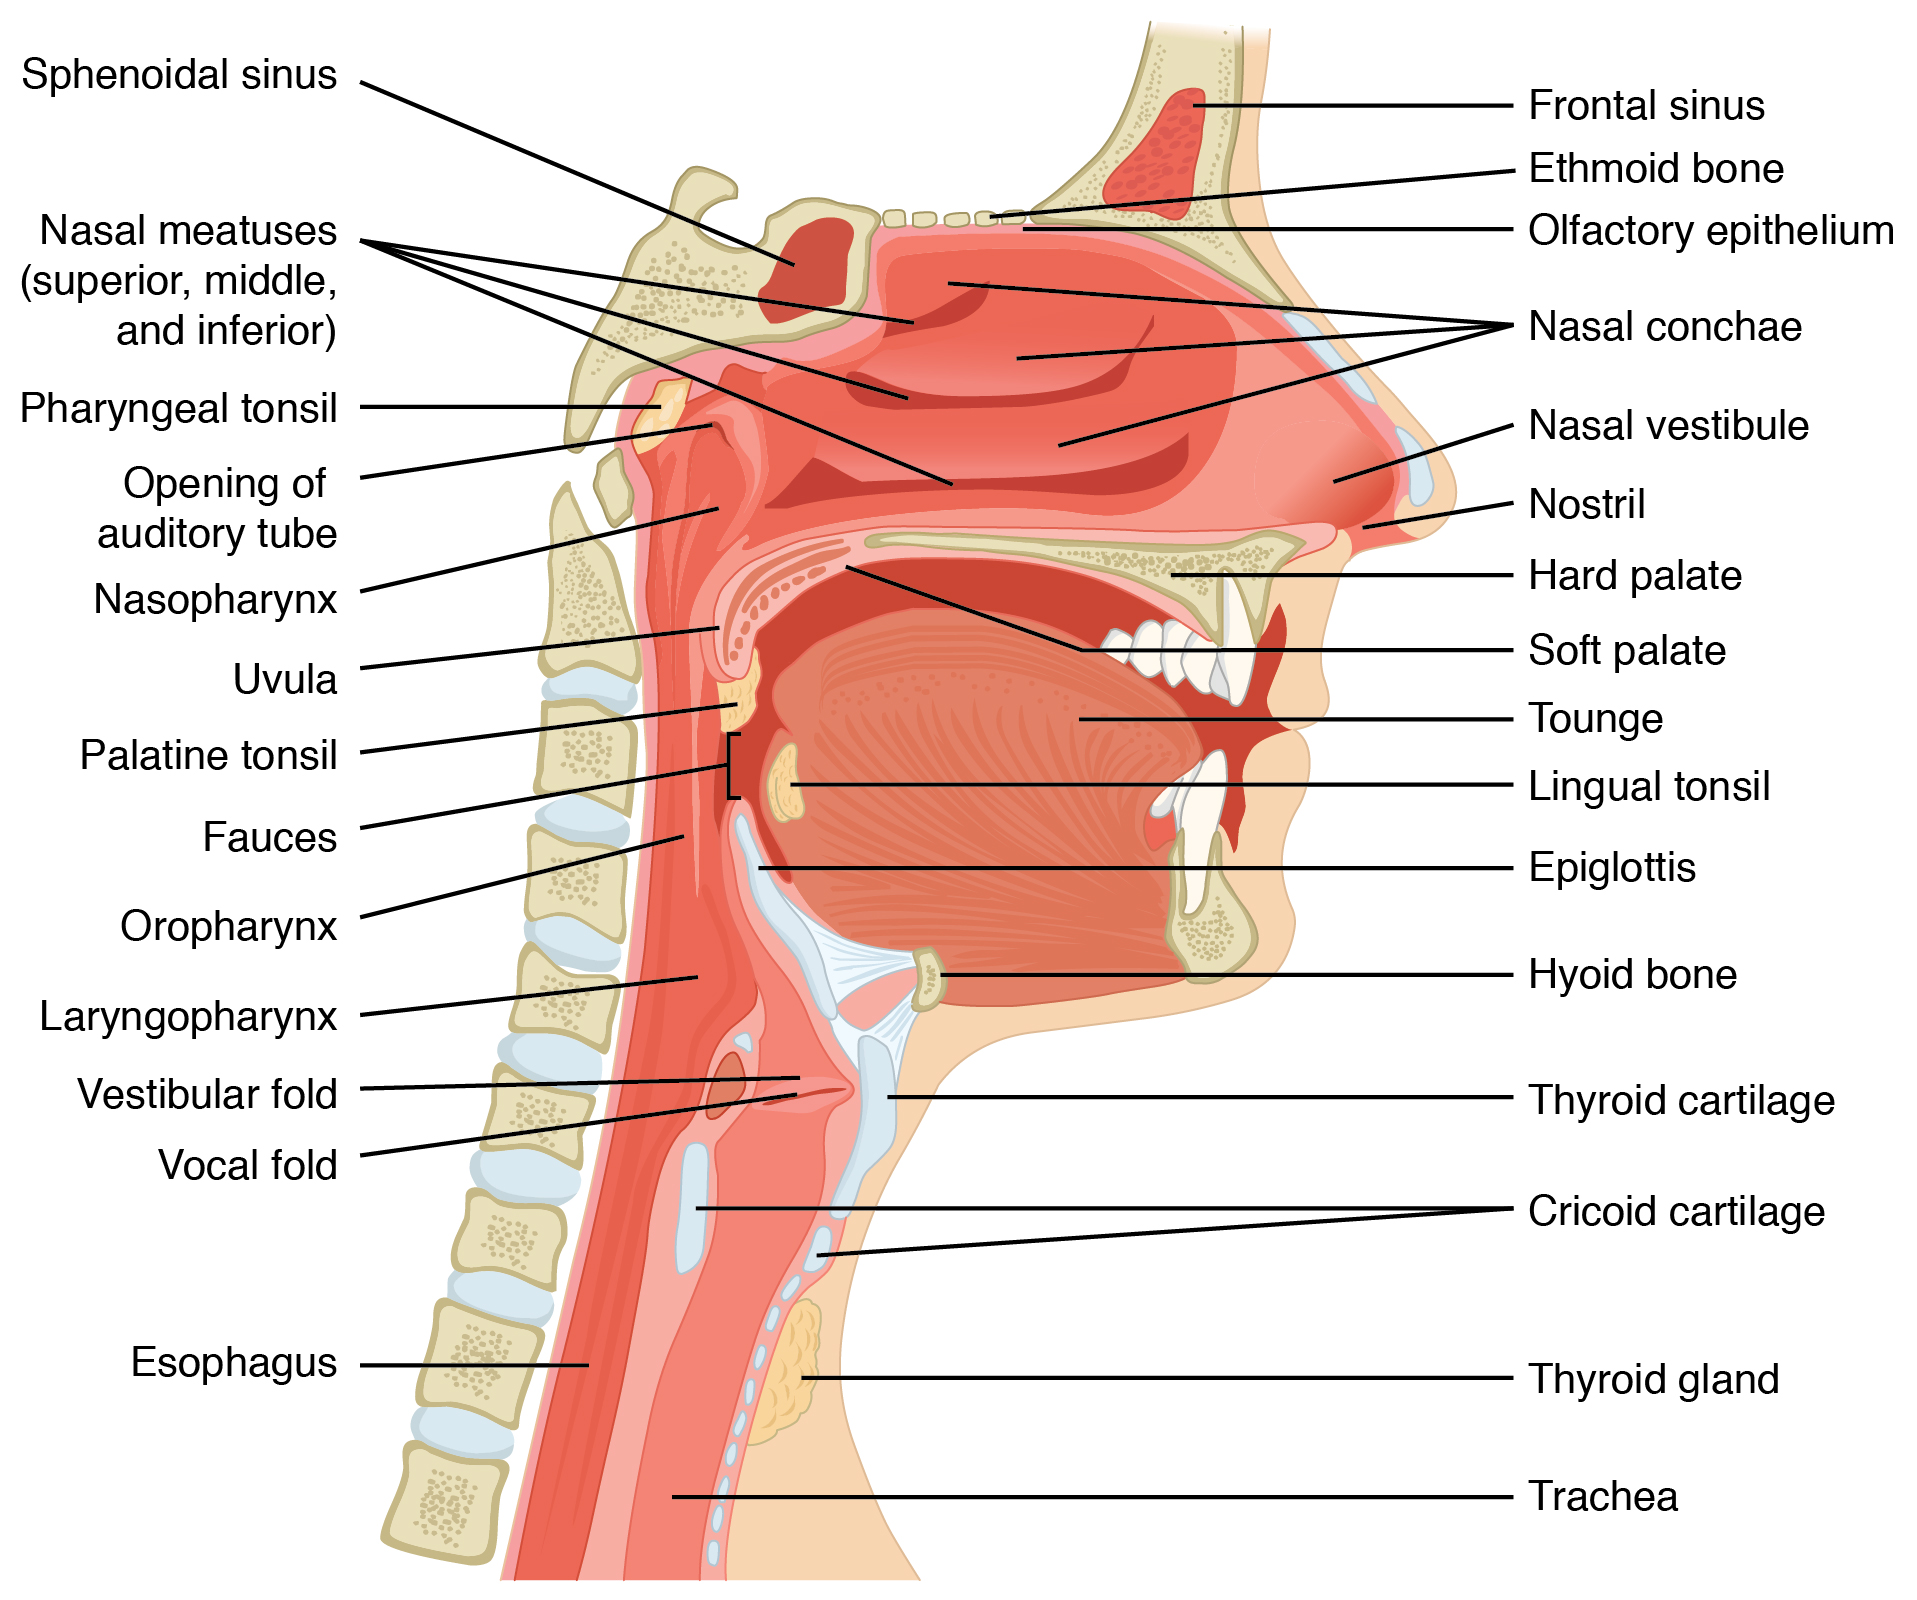 2303_Anatomy_of_Nose-Pharynx-Mouth-Larynx – Anatomy and Physiology